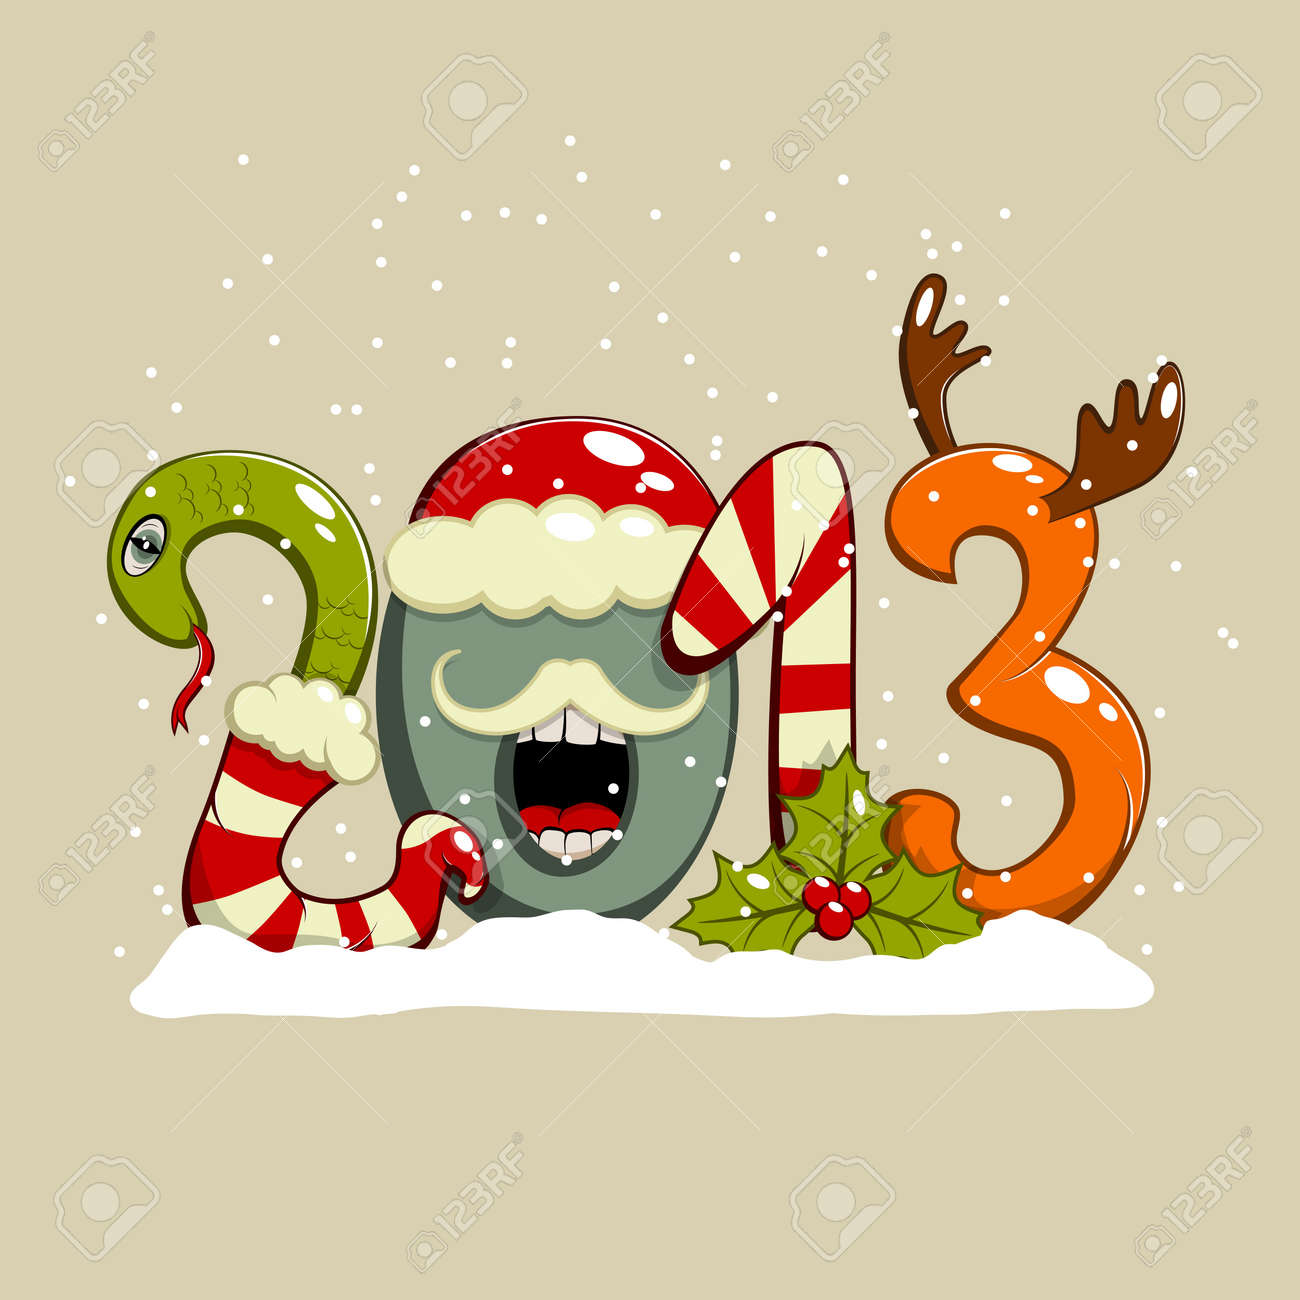 New year 2013 greeting card Stock Vector - 16610497